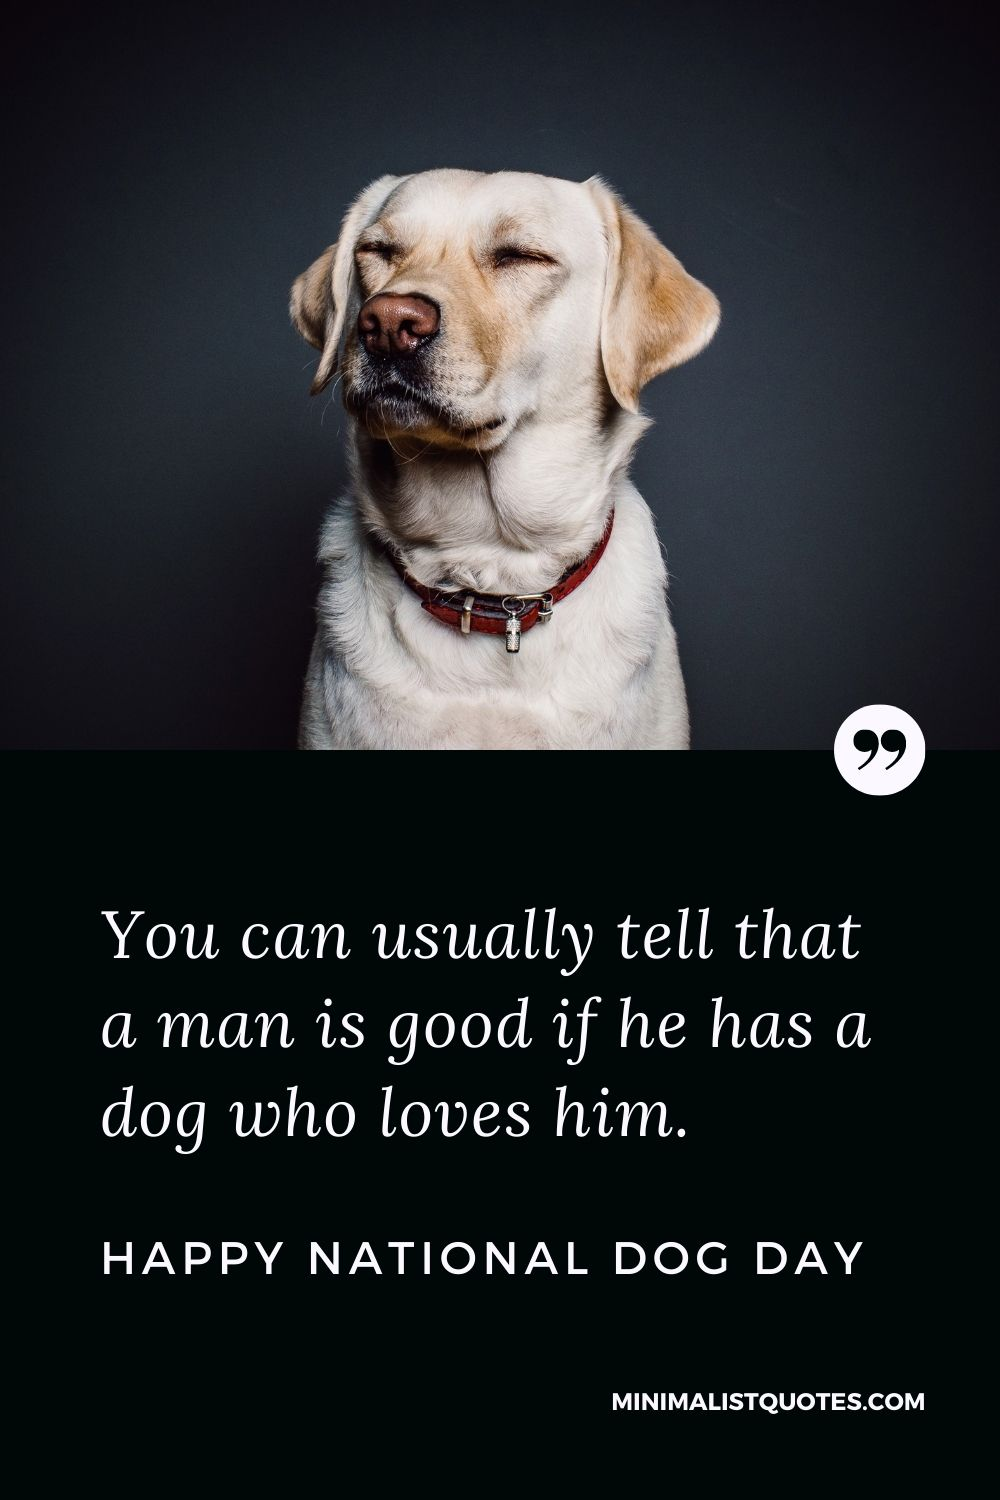 National Dog Day Quote, Wish & Message With Image: You can usually tell that a man is good if he has a dog who loves him. Happy National Dog Day!